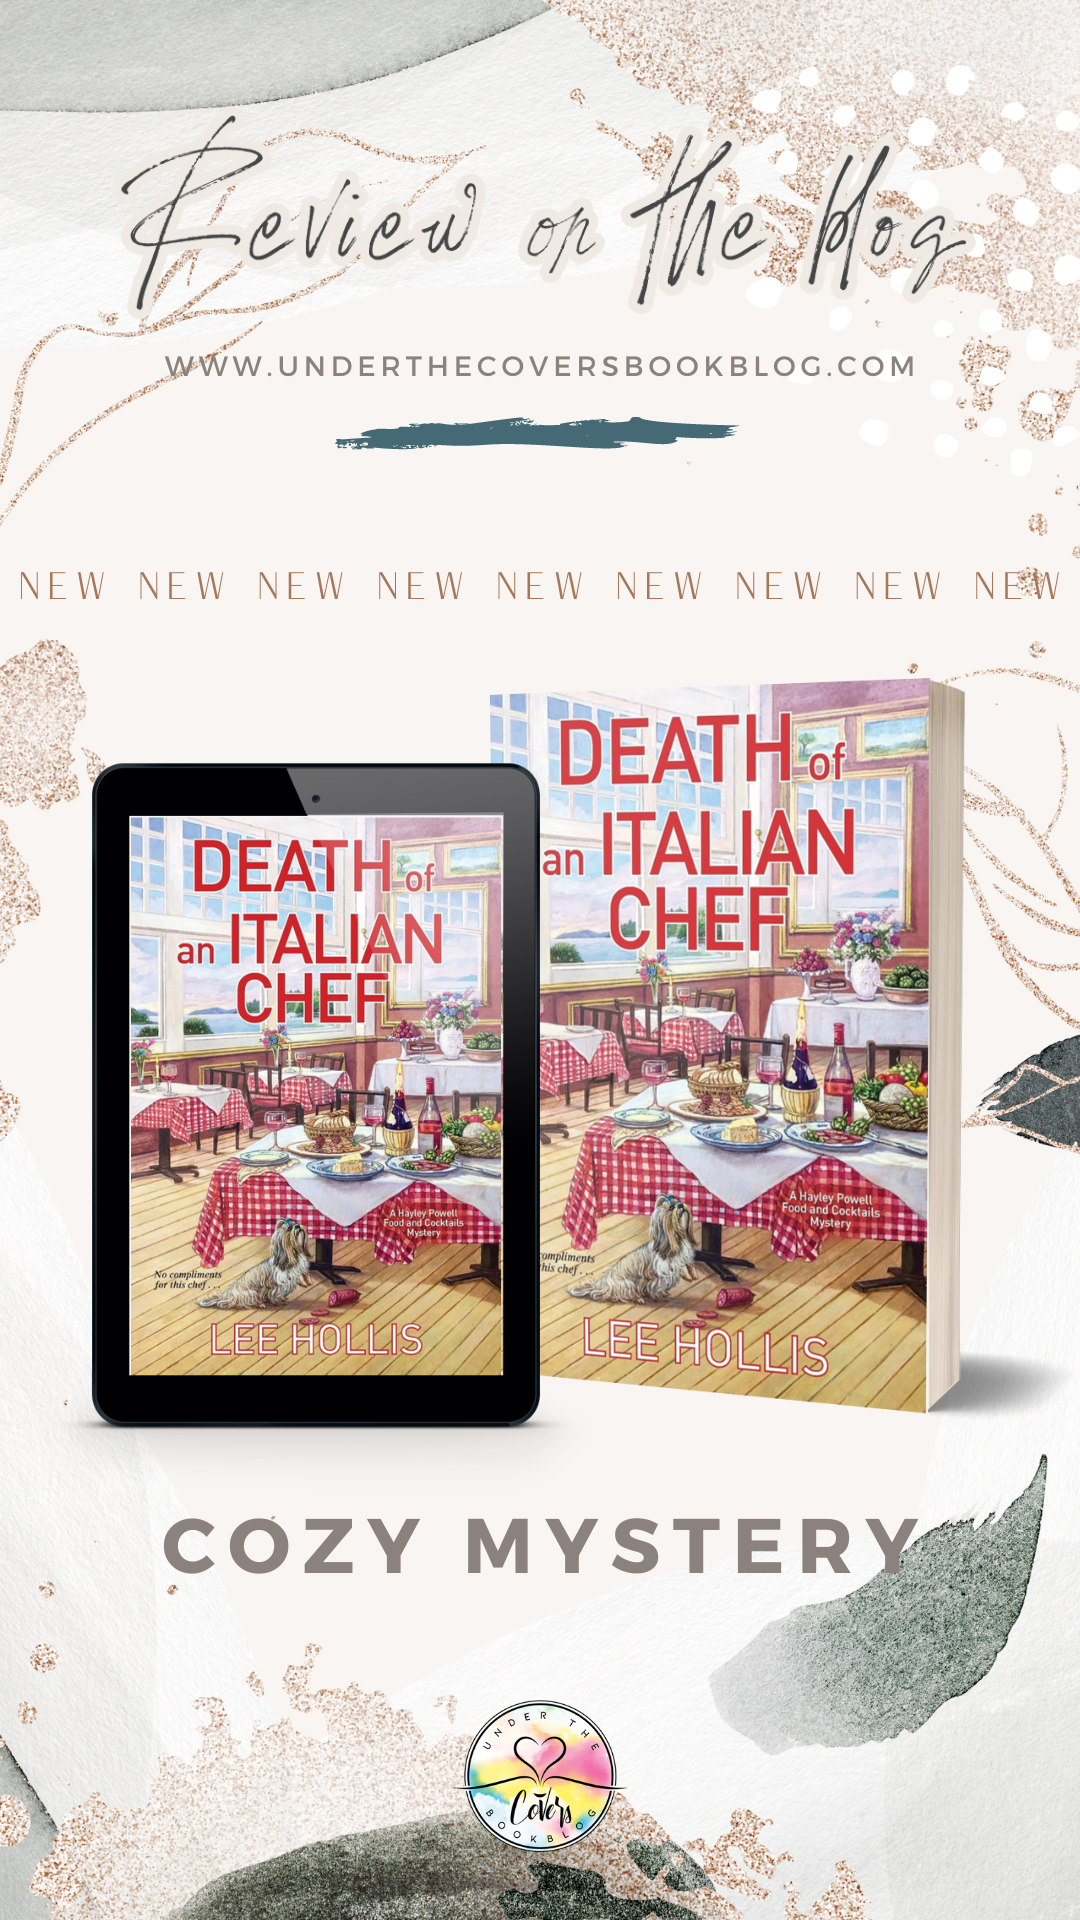 ARC Review: Death of an Italian Chef by Lee Hollis